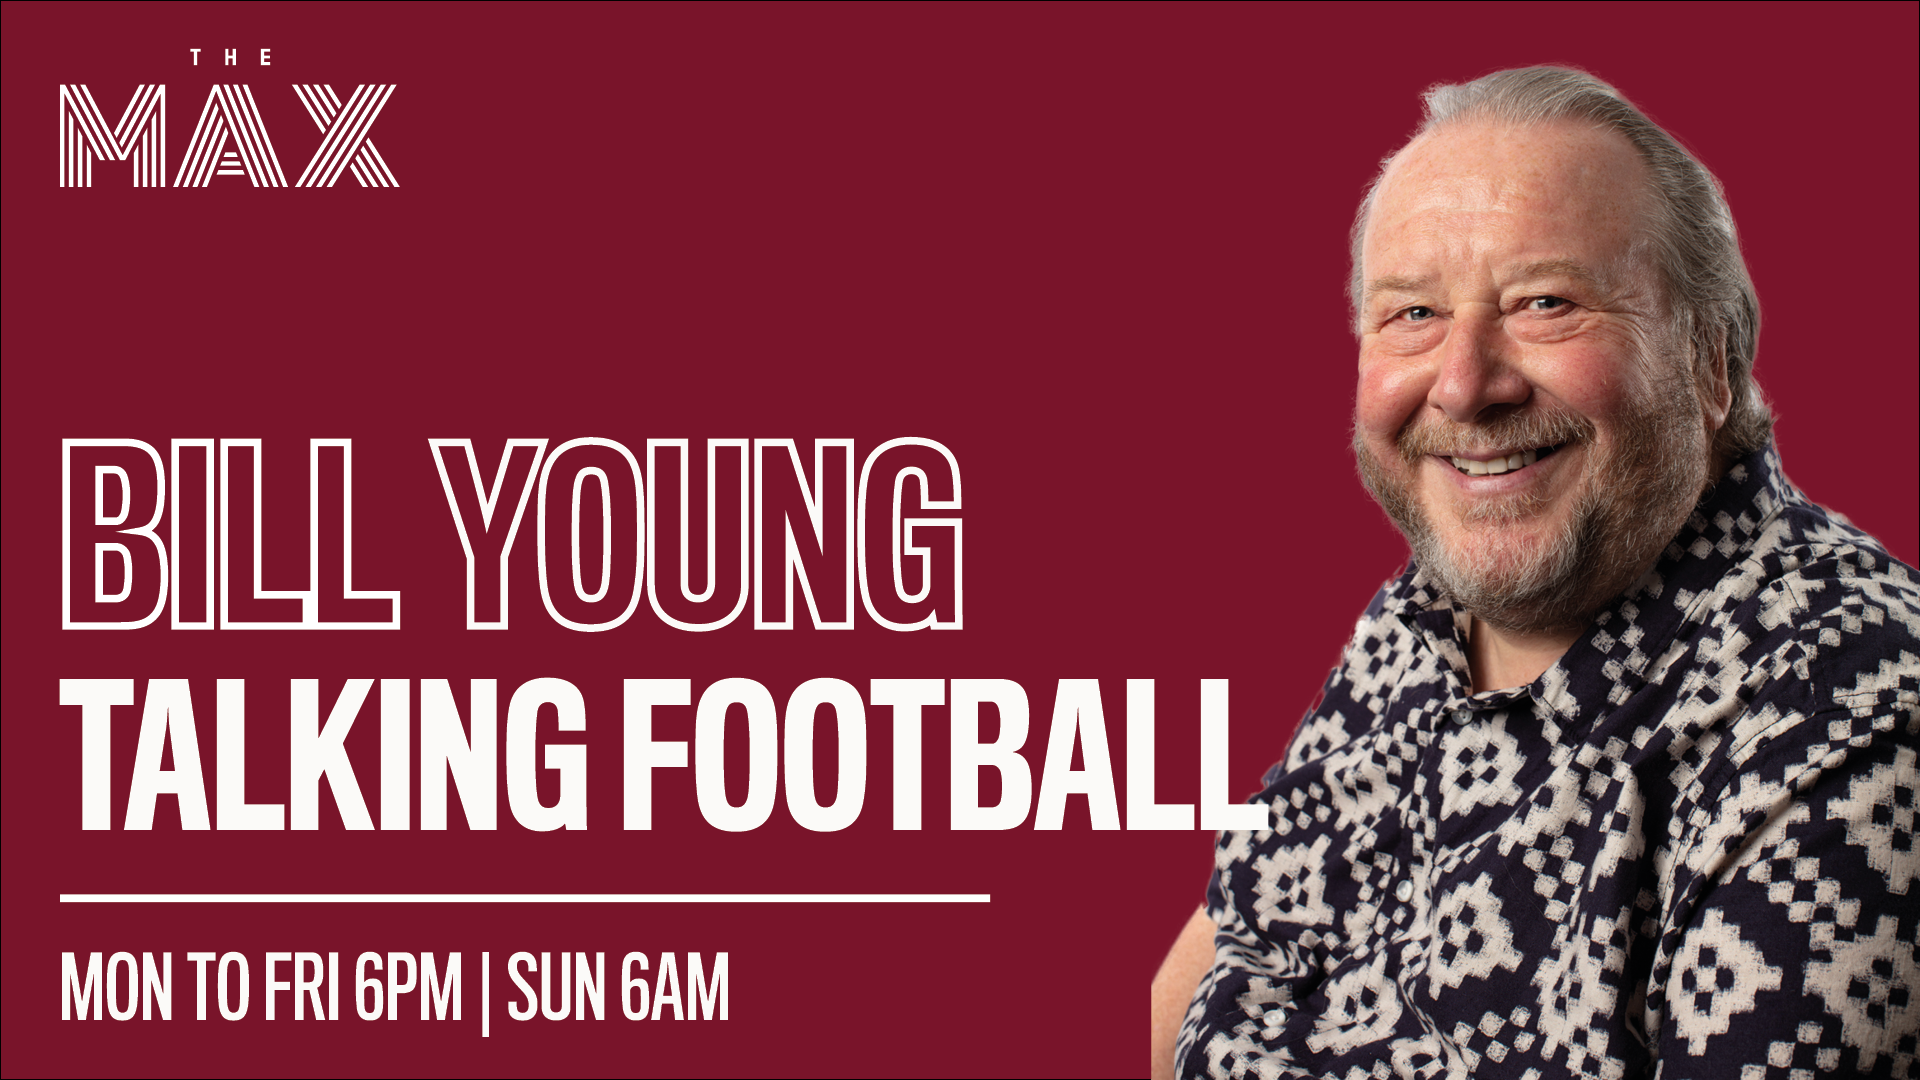 Talking Football with Bill Young - Tuesday 9th March